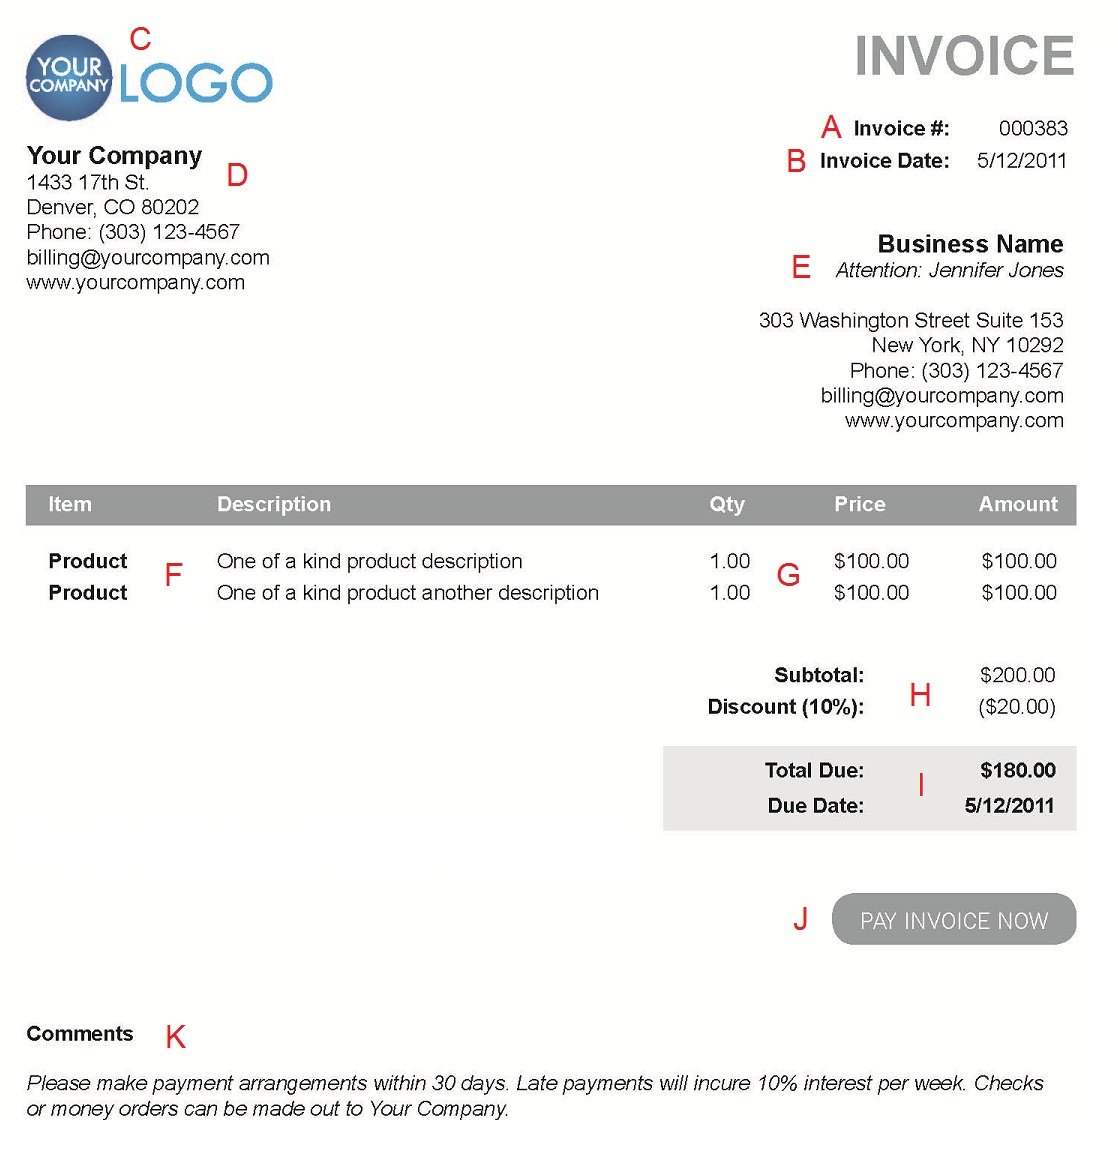 Christianhomebusinessus  Terrific The  Different Sections Of An Electronic Payment Invoice With Entrancing A  With Amazing Rent Receipt Letter Also Certified Mail Receipt Template In Addition Printable Receipt Templates And Network Receipt Printer As Well As Via Certified Mail Return Receipt Requested Additionally Rent Payment Receipt Template From Paysimplecom With Christianhomebusinessus  Entrancing The  Different Sections Of An Electronic Payment Invoice With Amazing A  And Terrific Rent Receipt Letter Also Certified Mail Receipt Template In Addition Printable Receipt Templates From Paysimplecom